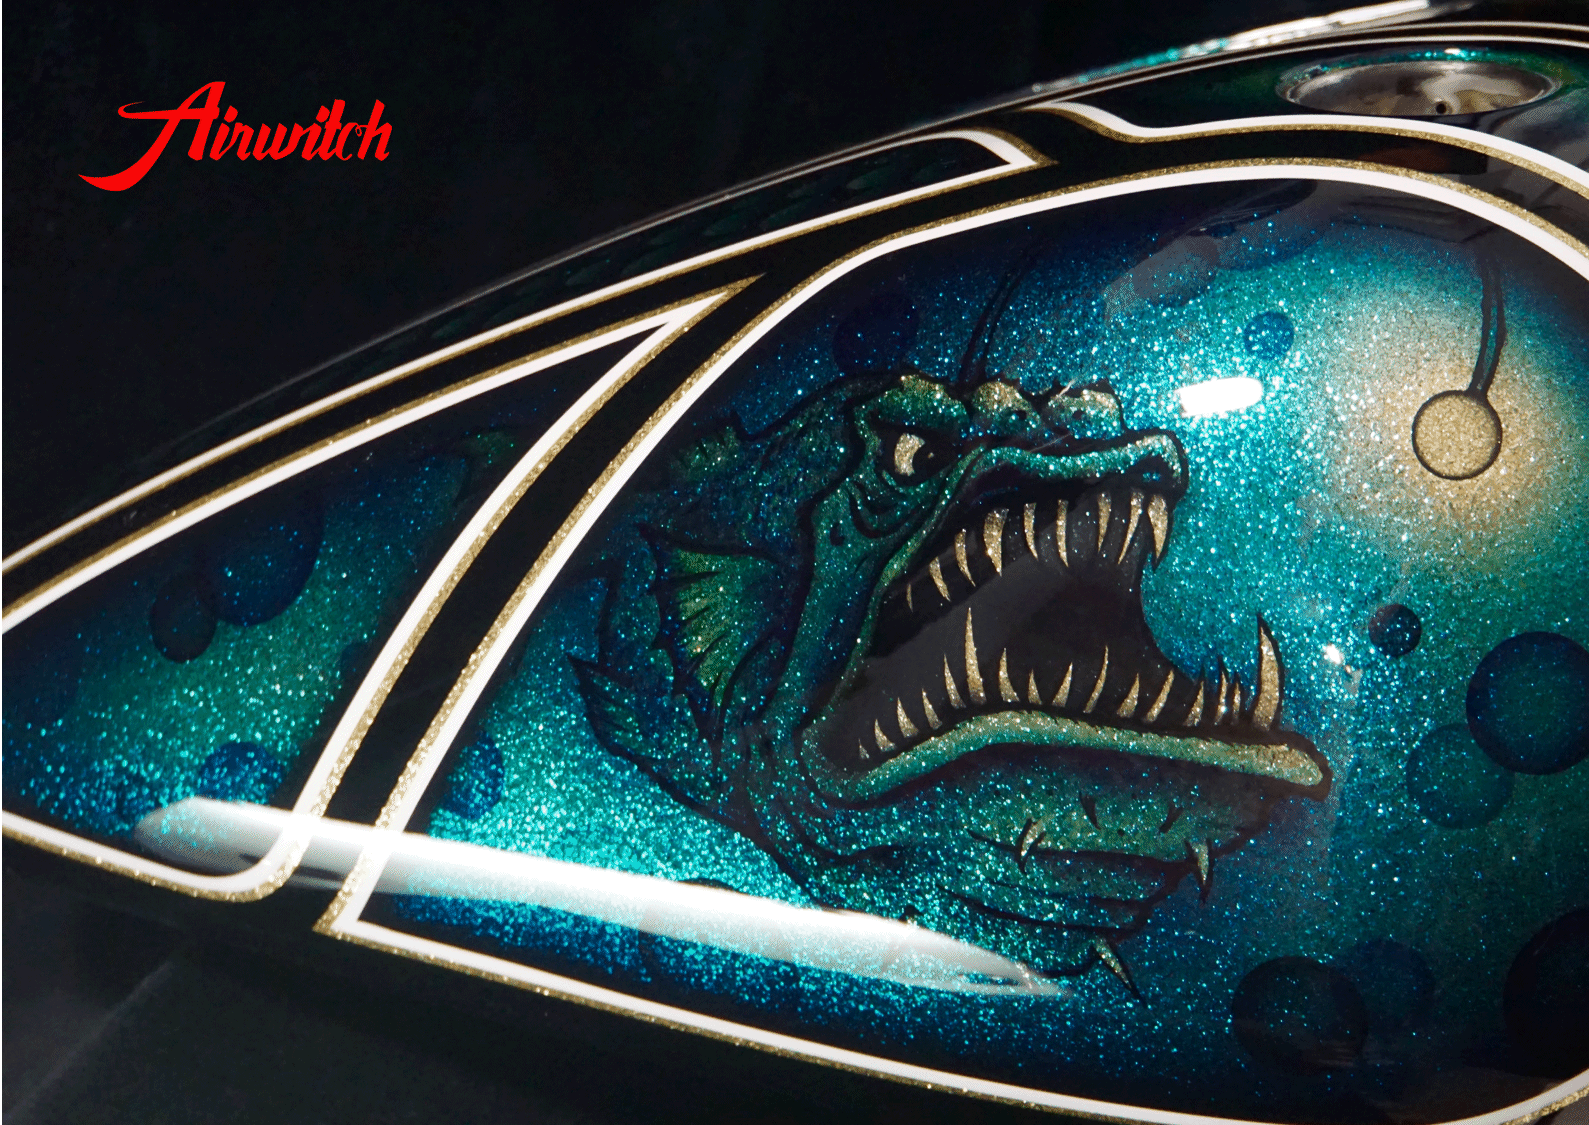 Custom Paint Harley Davidson Softail Metalflake Lackierung with anglerfish ocean blue turquoise gold black